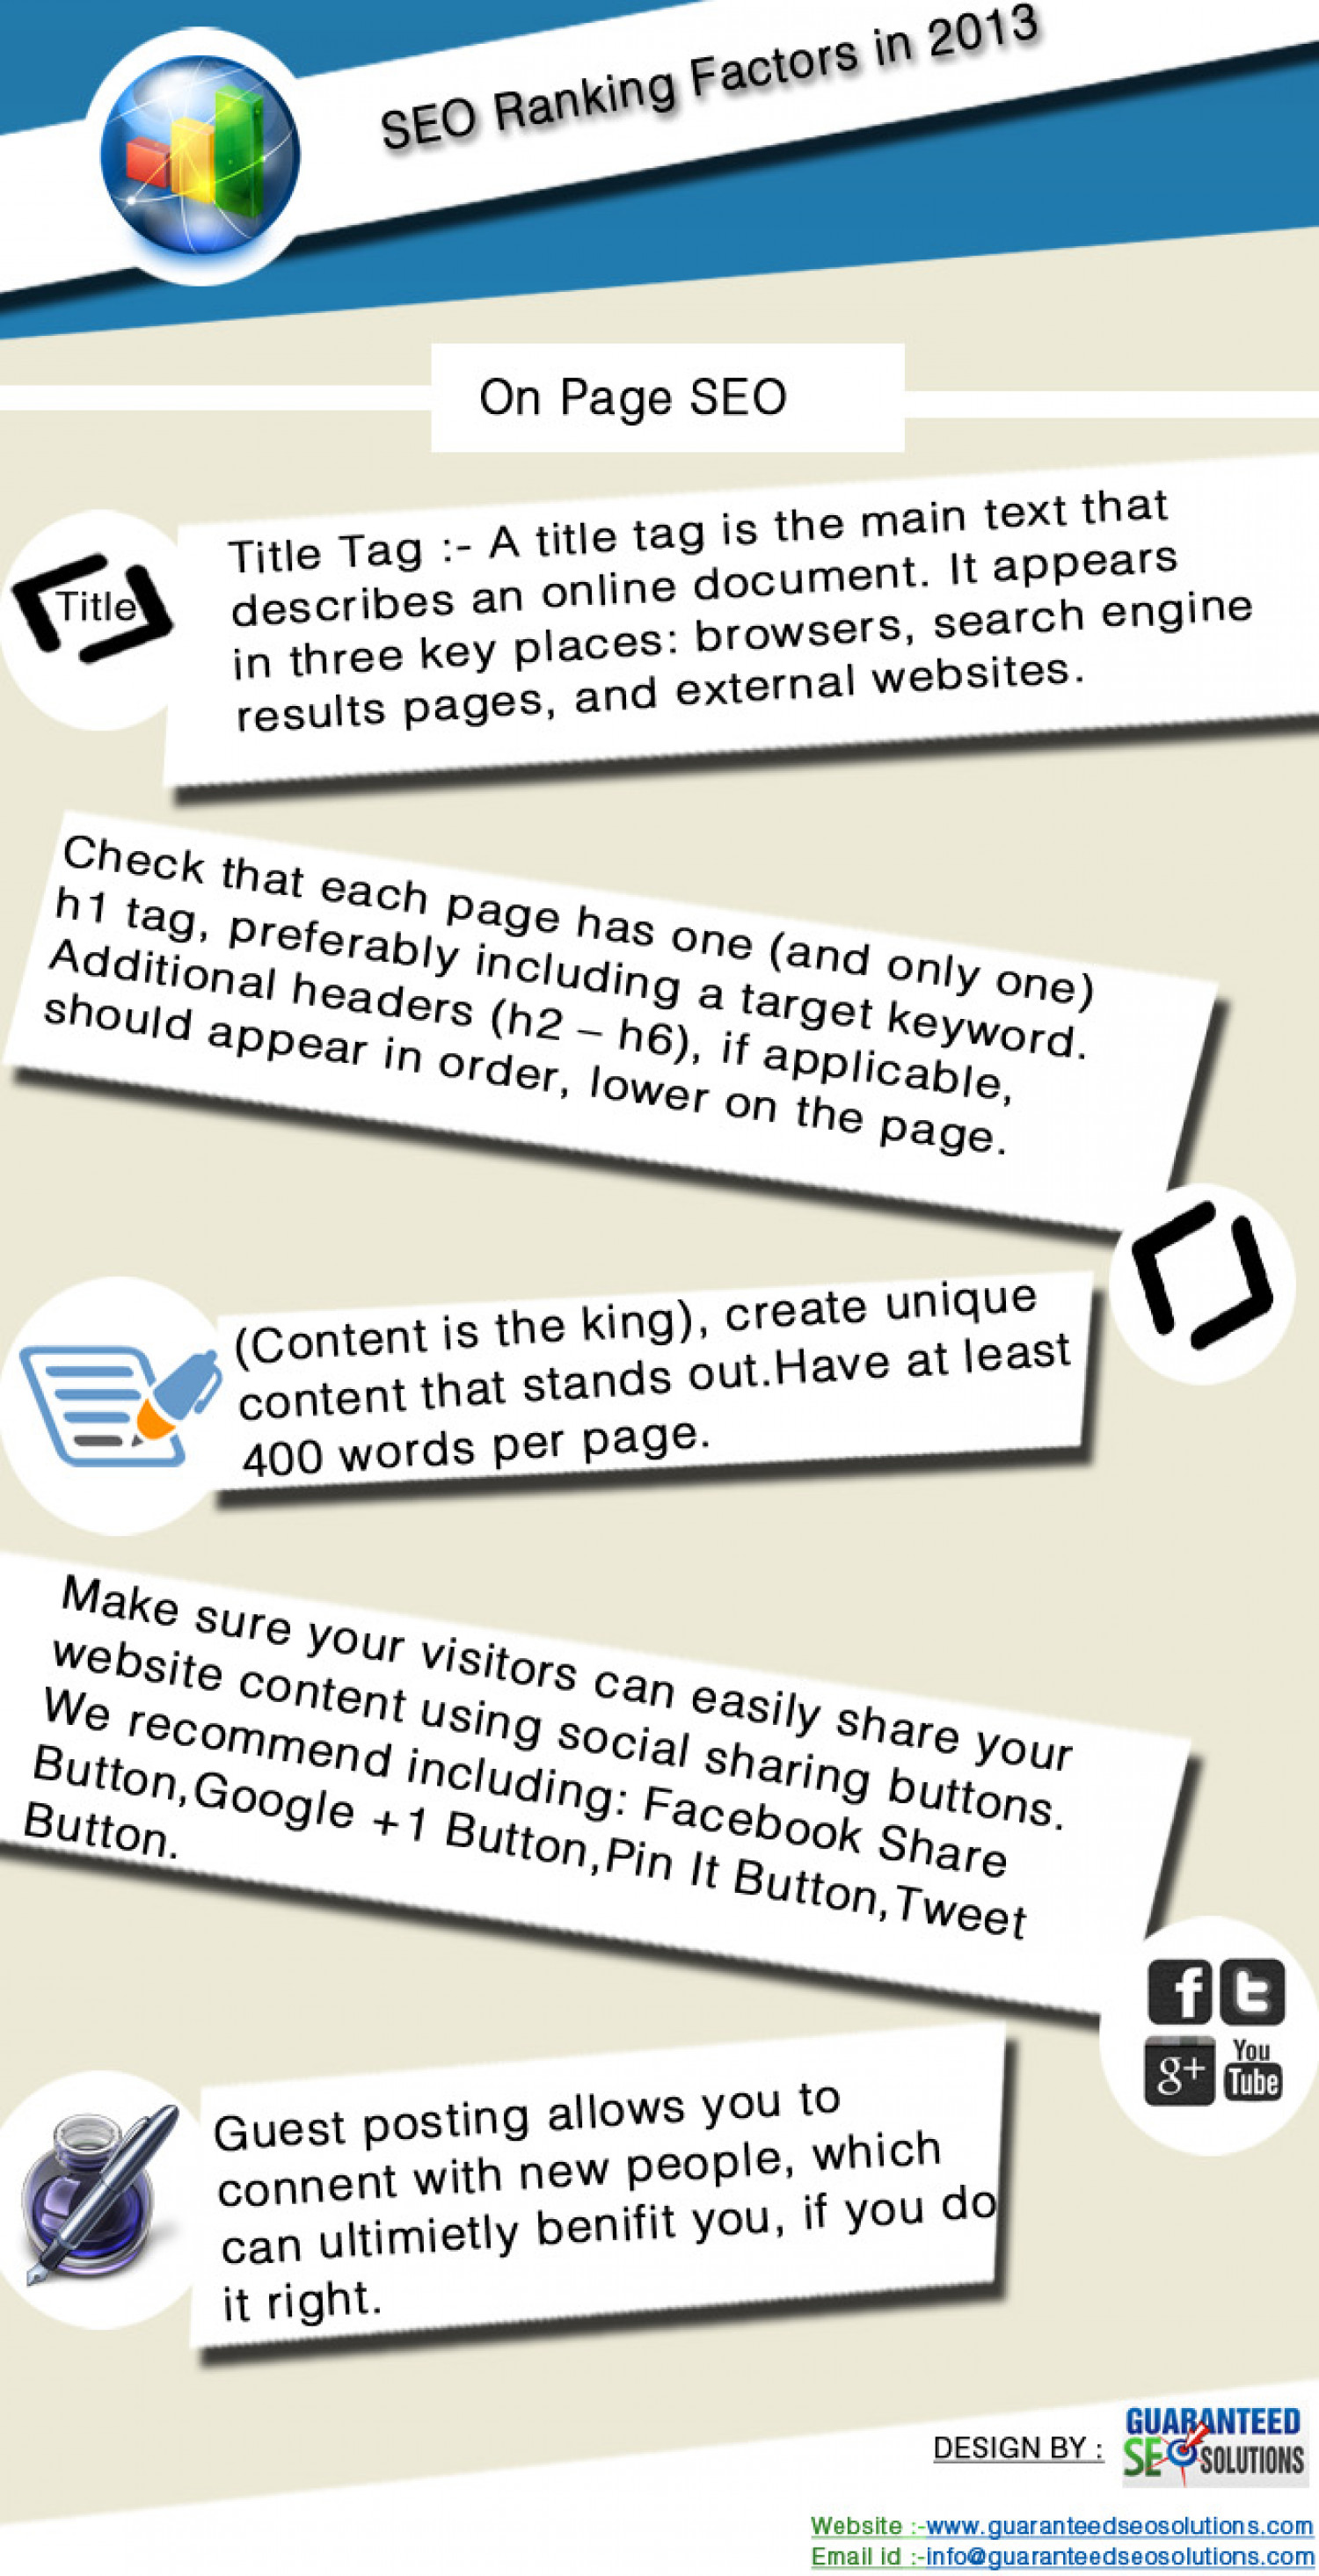 SEO Ranking Factors In 2013 Infographic